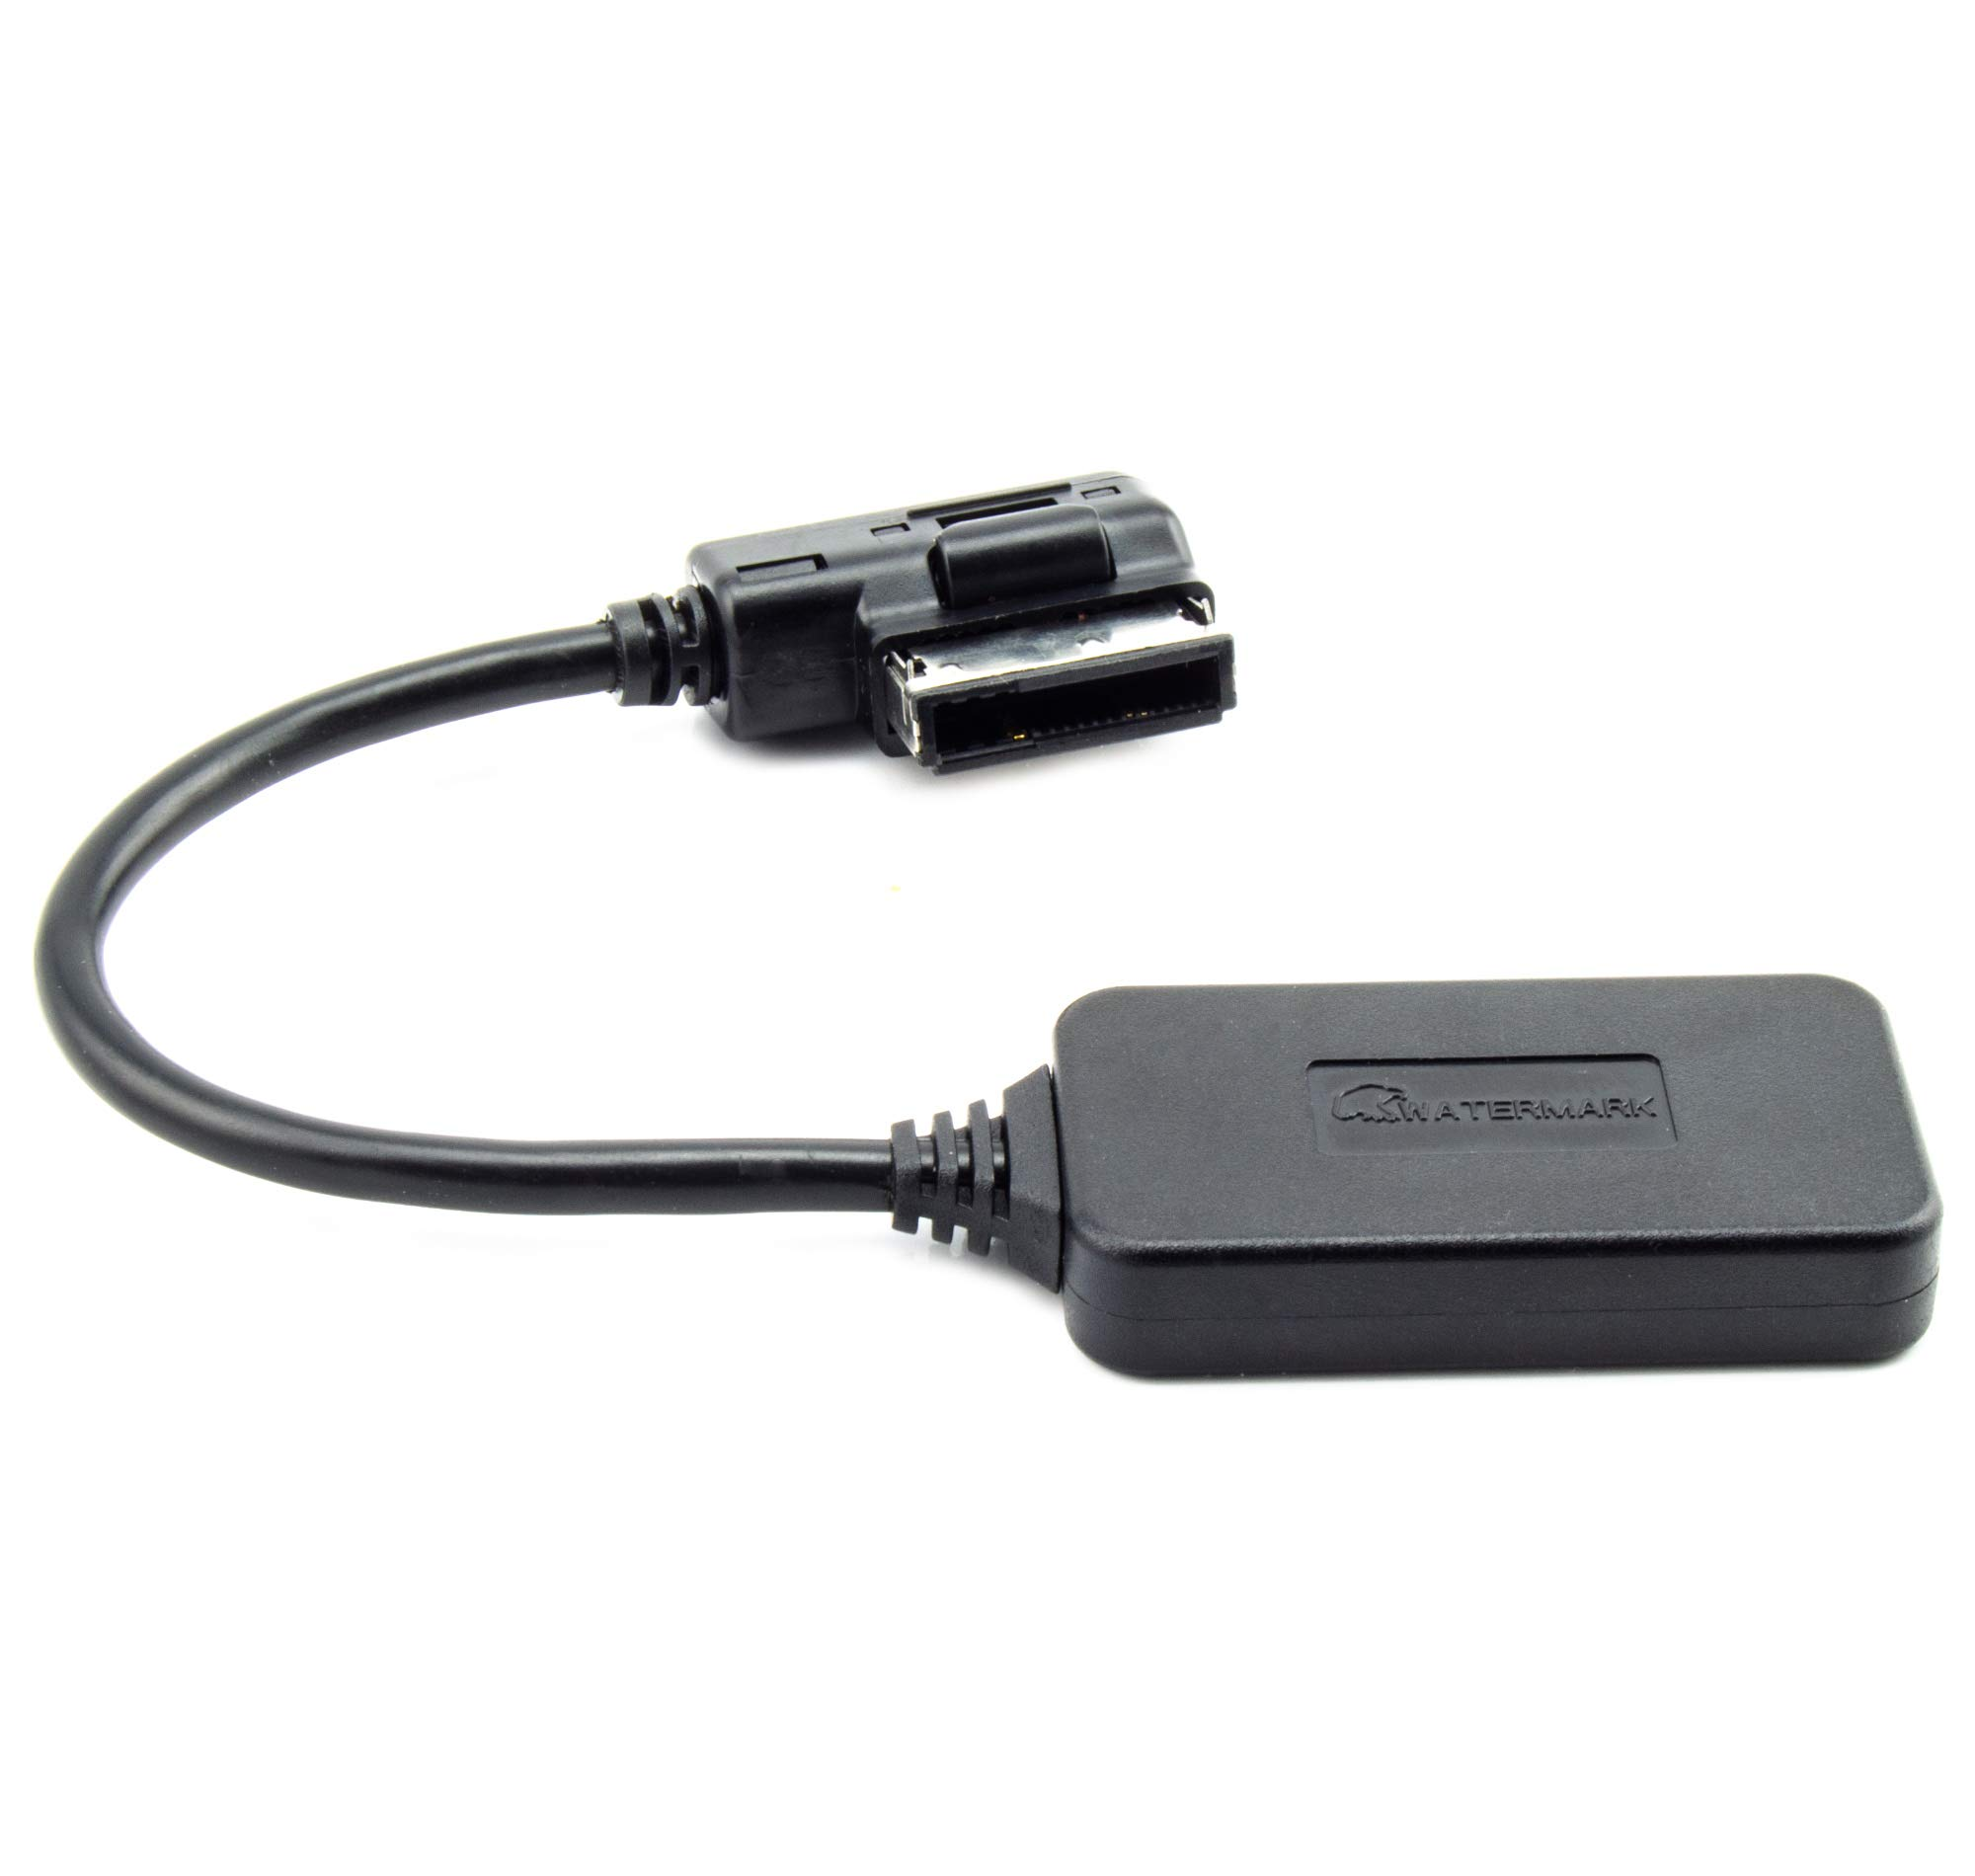 Watermark-WM-BT24-Bluetooth-Aux-Adapter-fr-Audi-VW-SEAT-Skoda-AMI-MMI-Media-Interface-Musik-Streaming